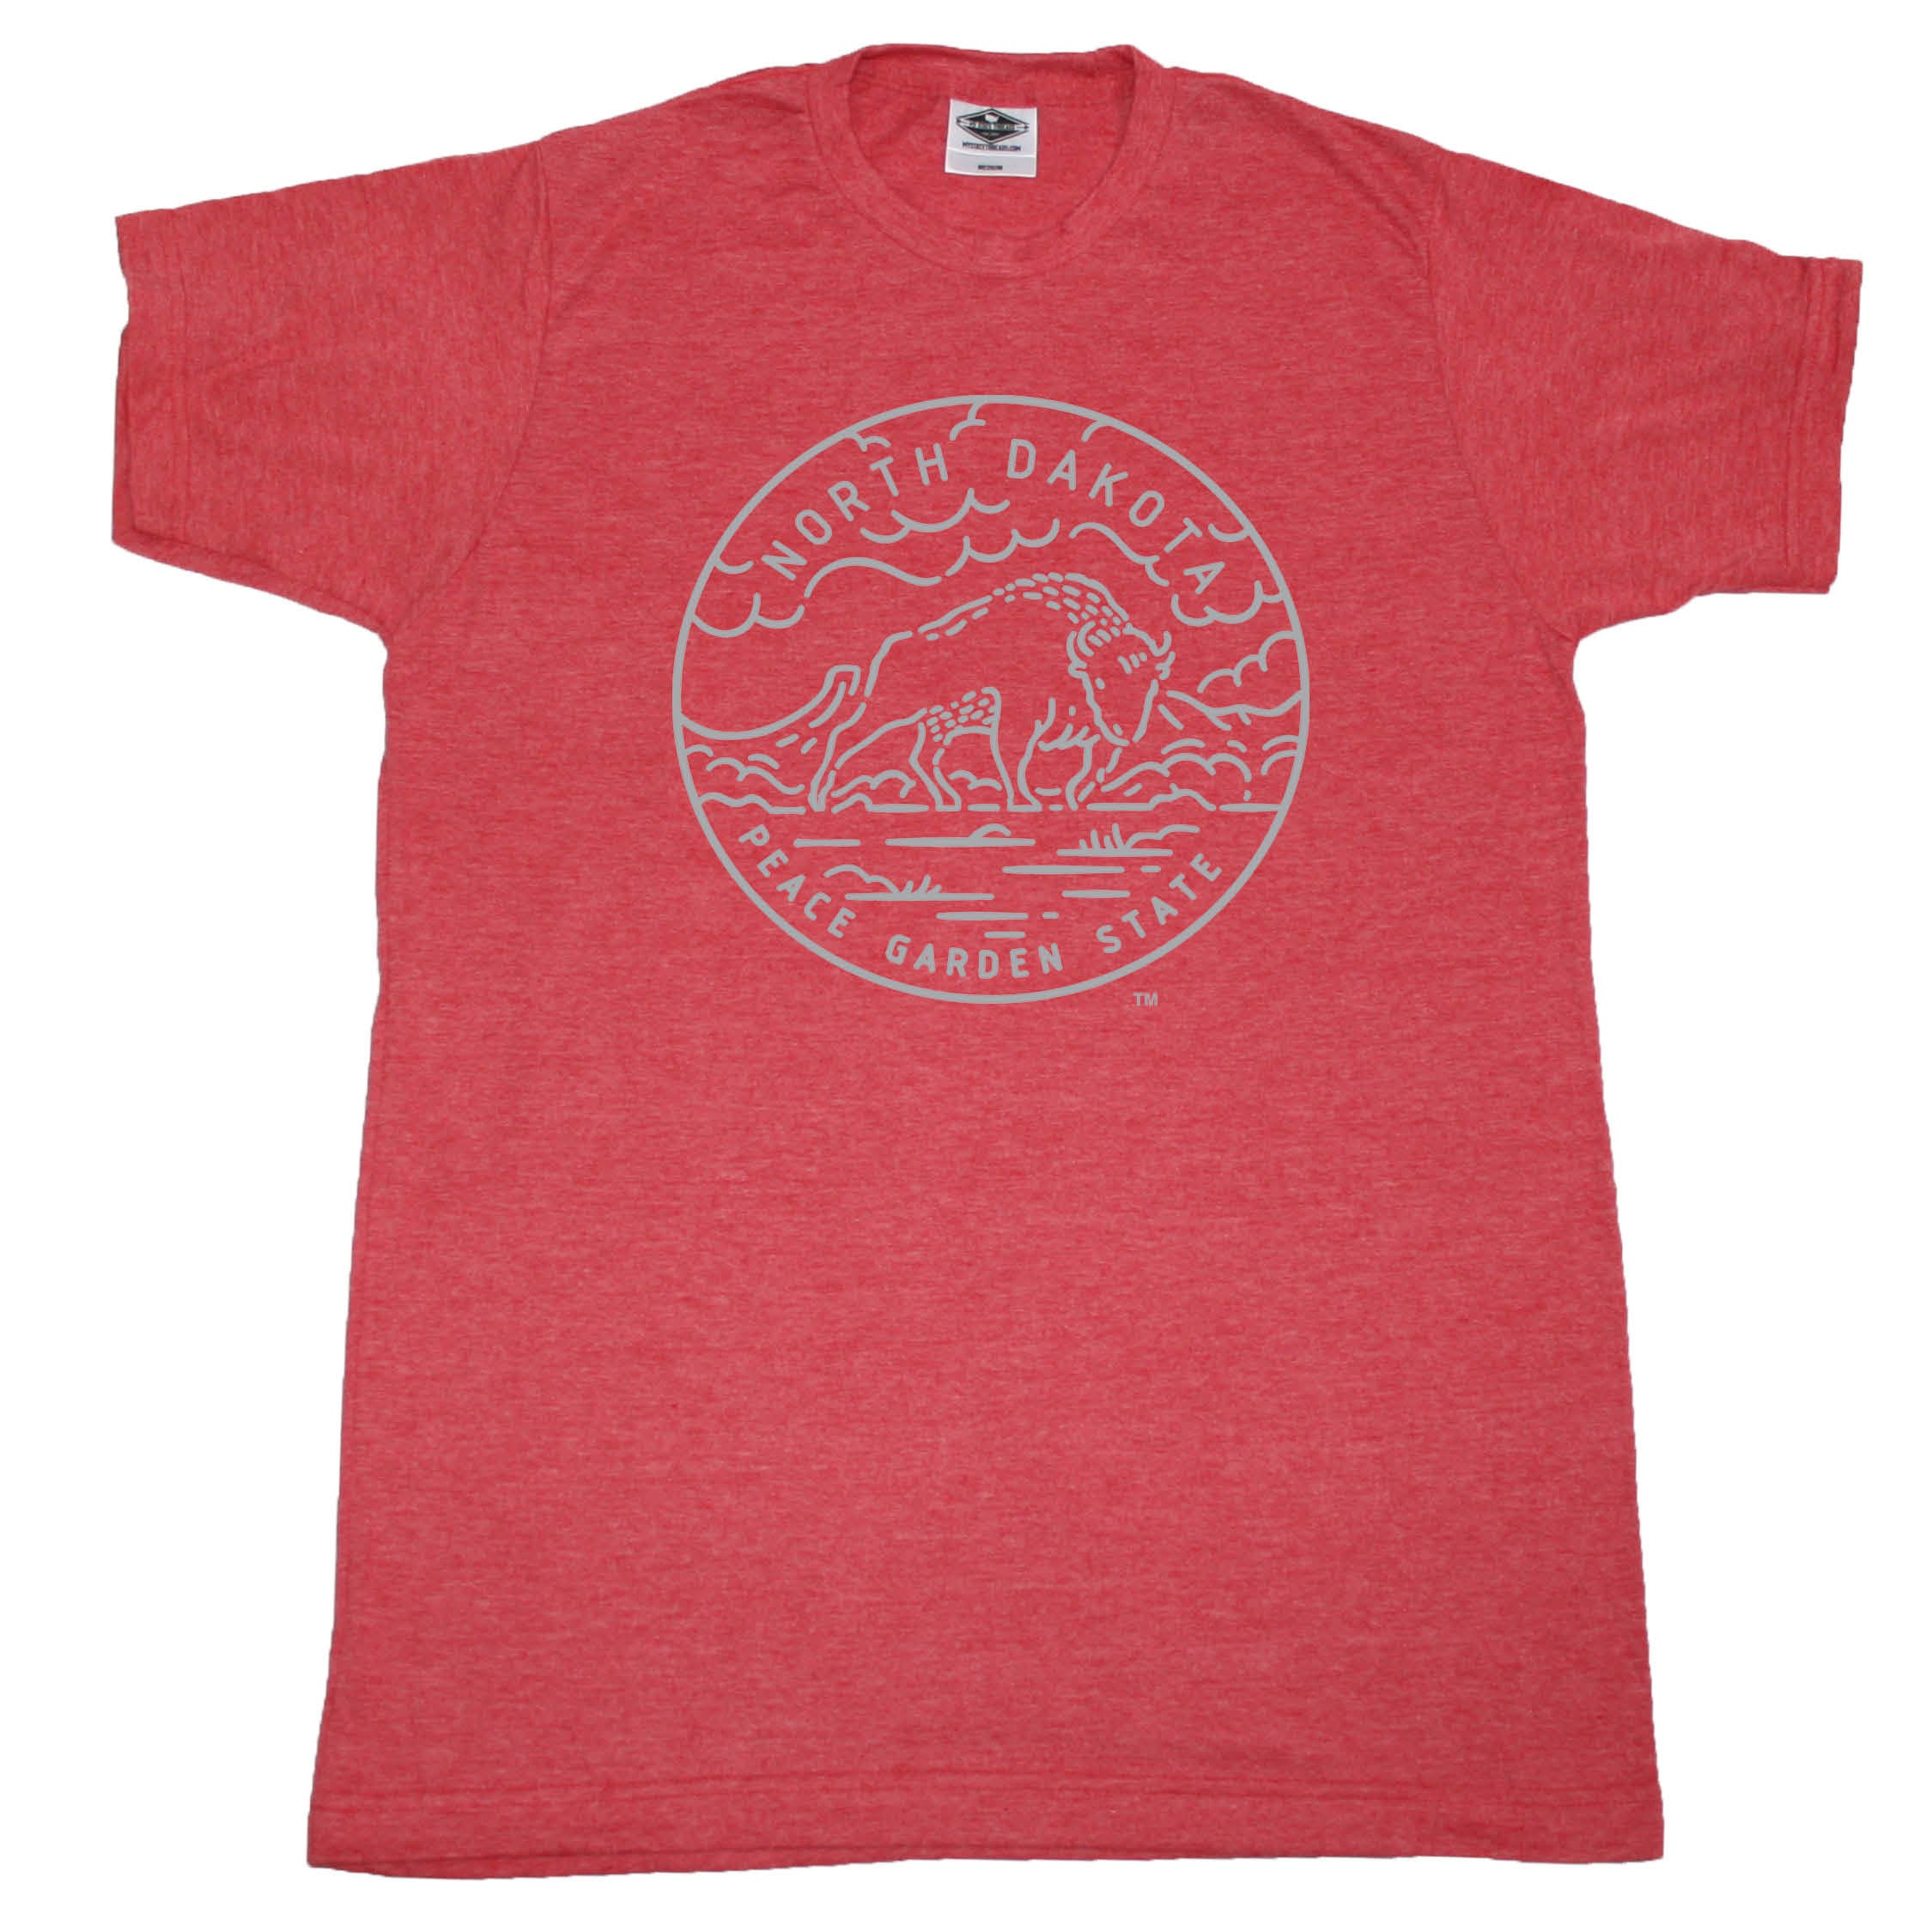 NORTH DAKOTA RED TEE | STATE SEAL | PEACE GARDEN STATE